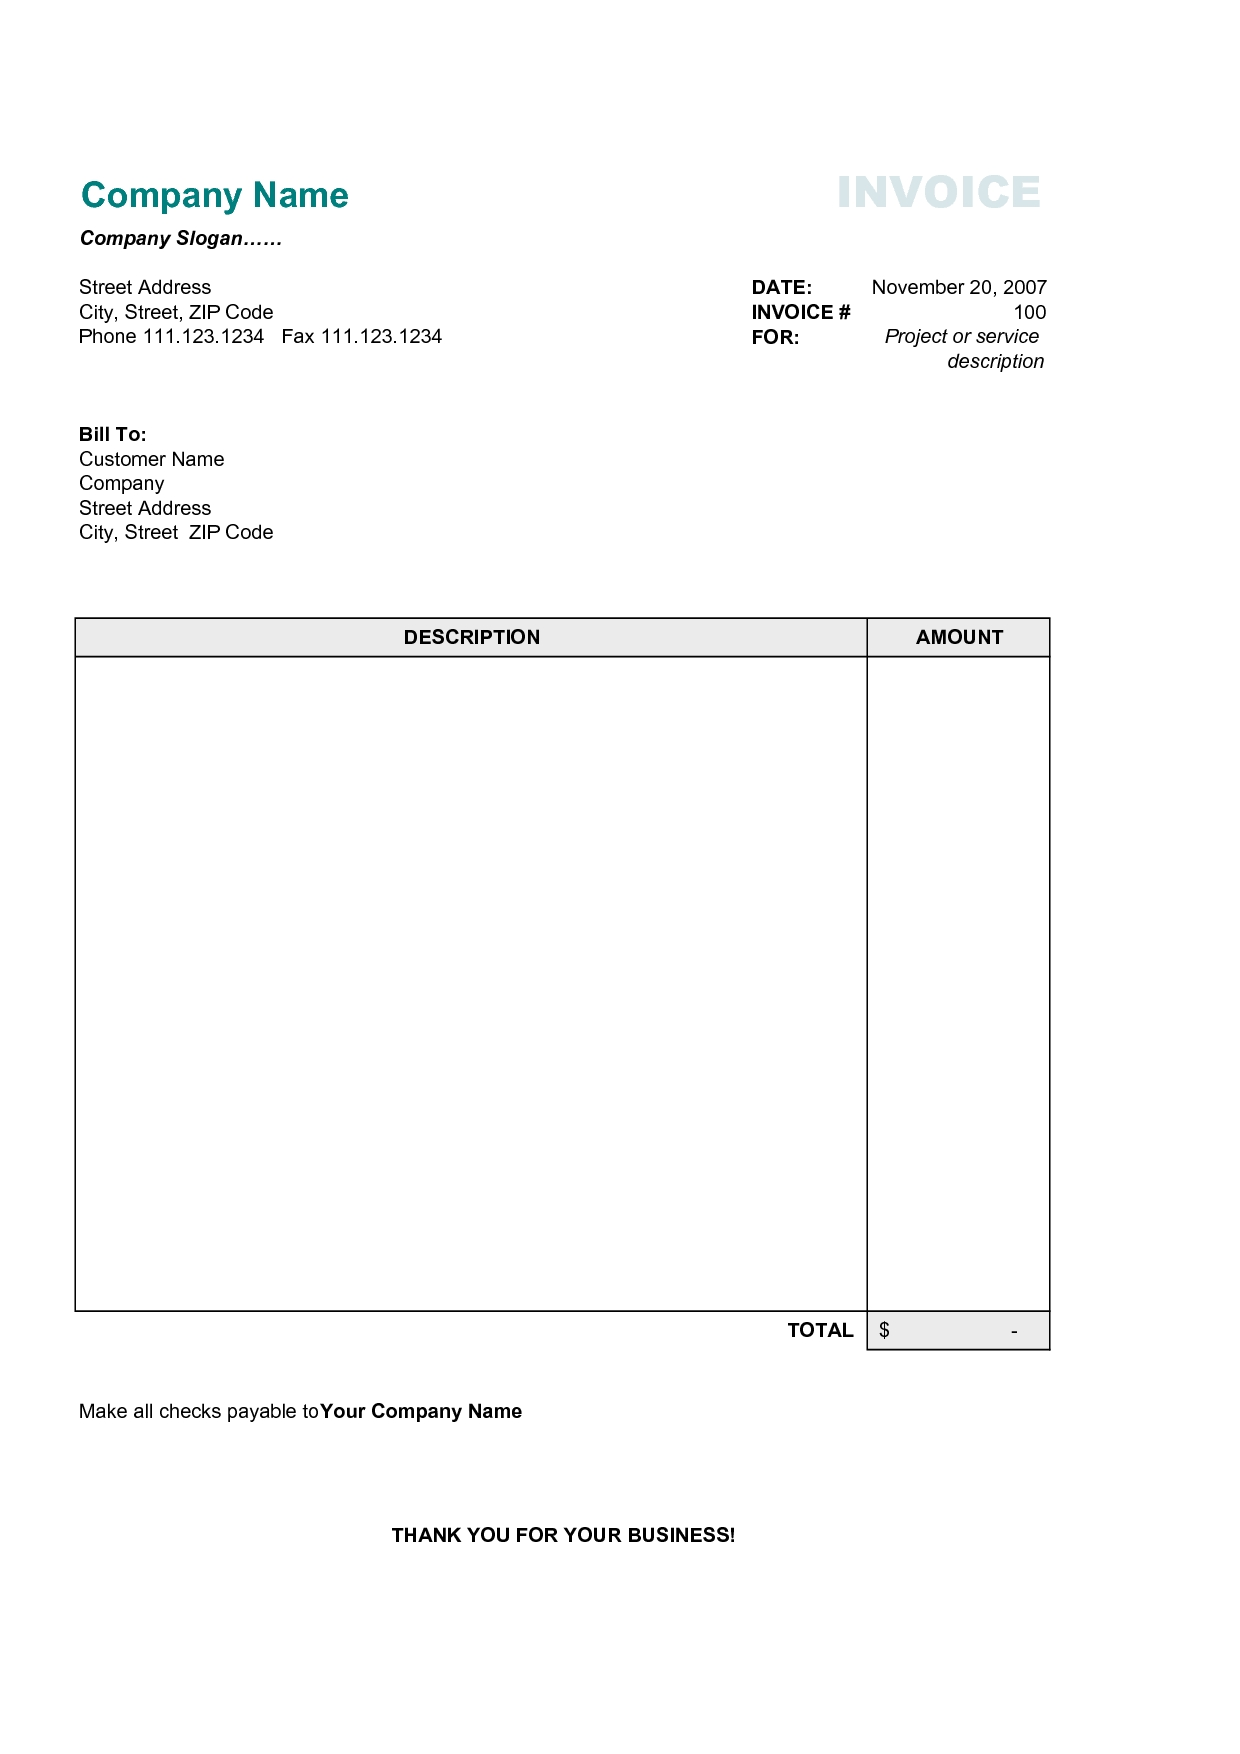 invoices samples invoice template ideas invoices samples invoice template open office modern clean invoice 1240 x 1754